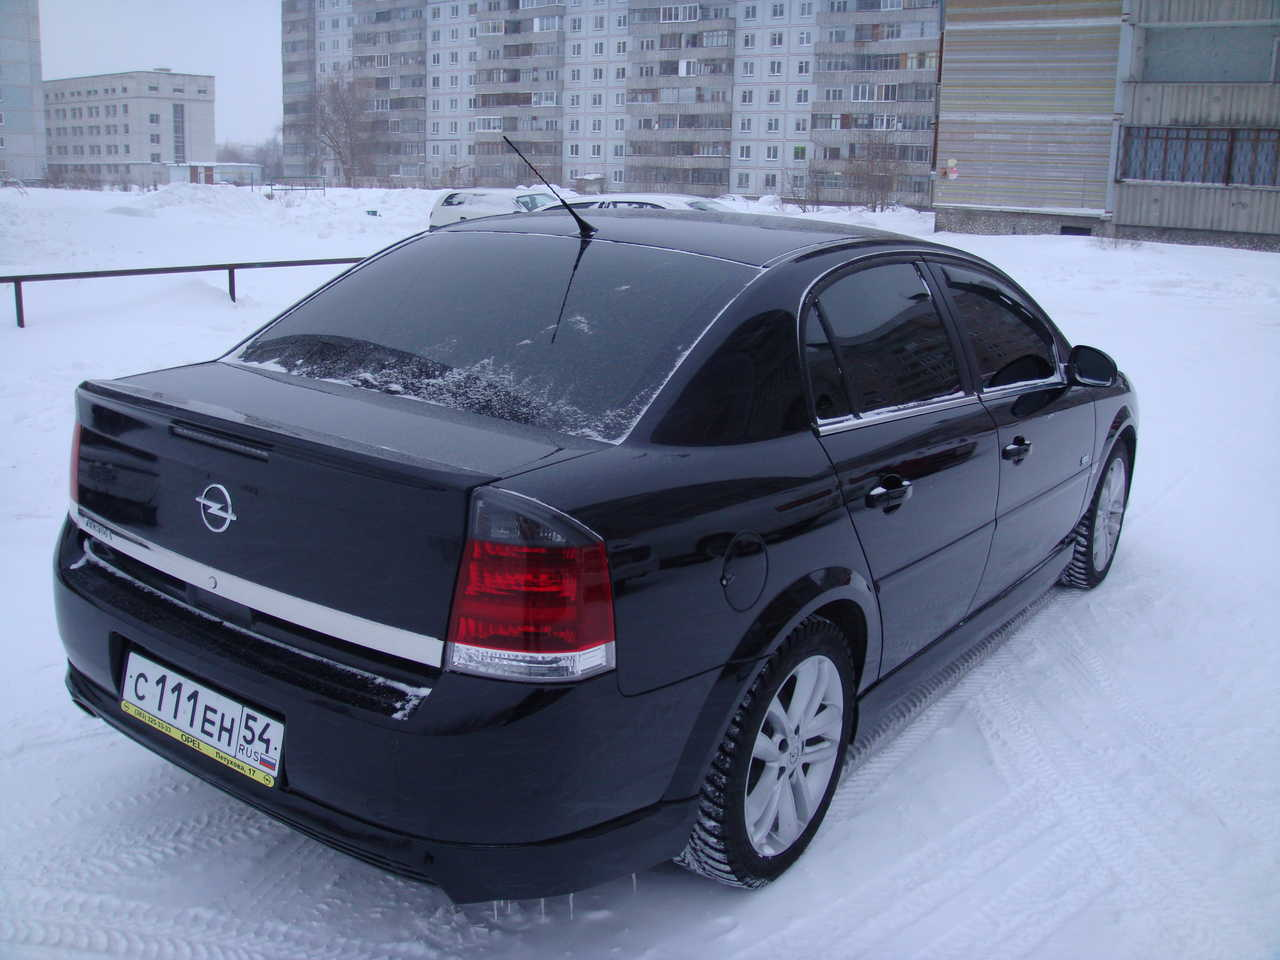 2008 Opel Vectra Specs  Engine Size 1800cm3  Fuel Type